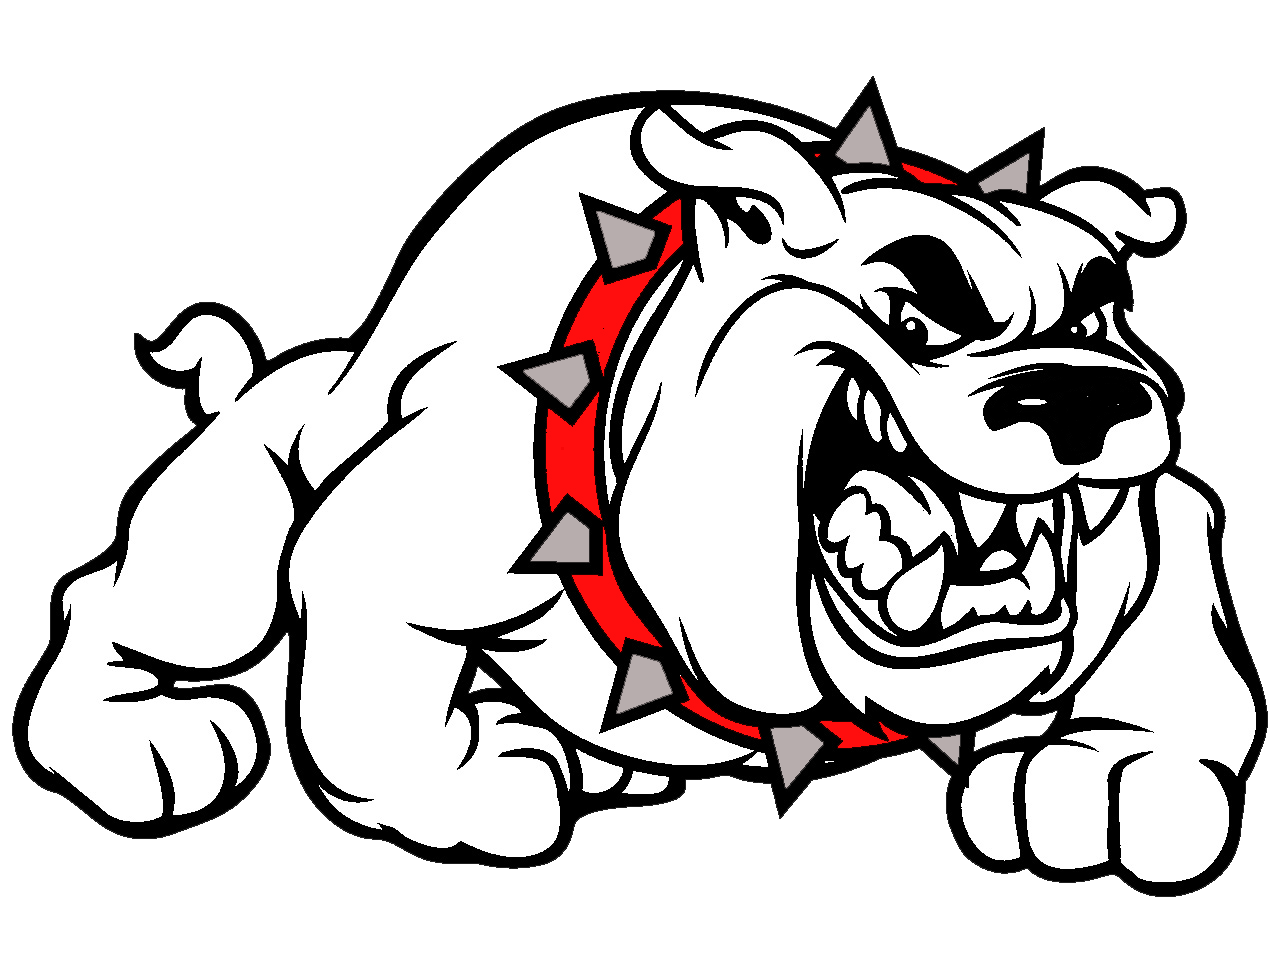 481392647655975180 on georgia bulldogs football logo